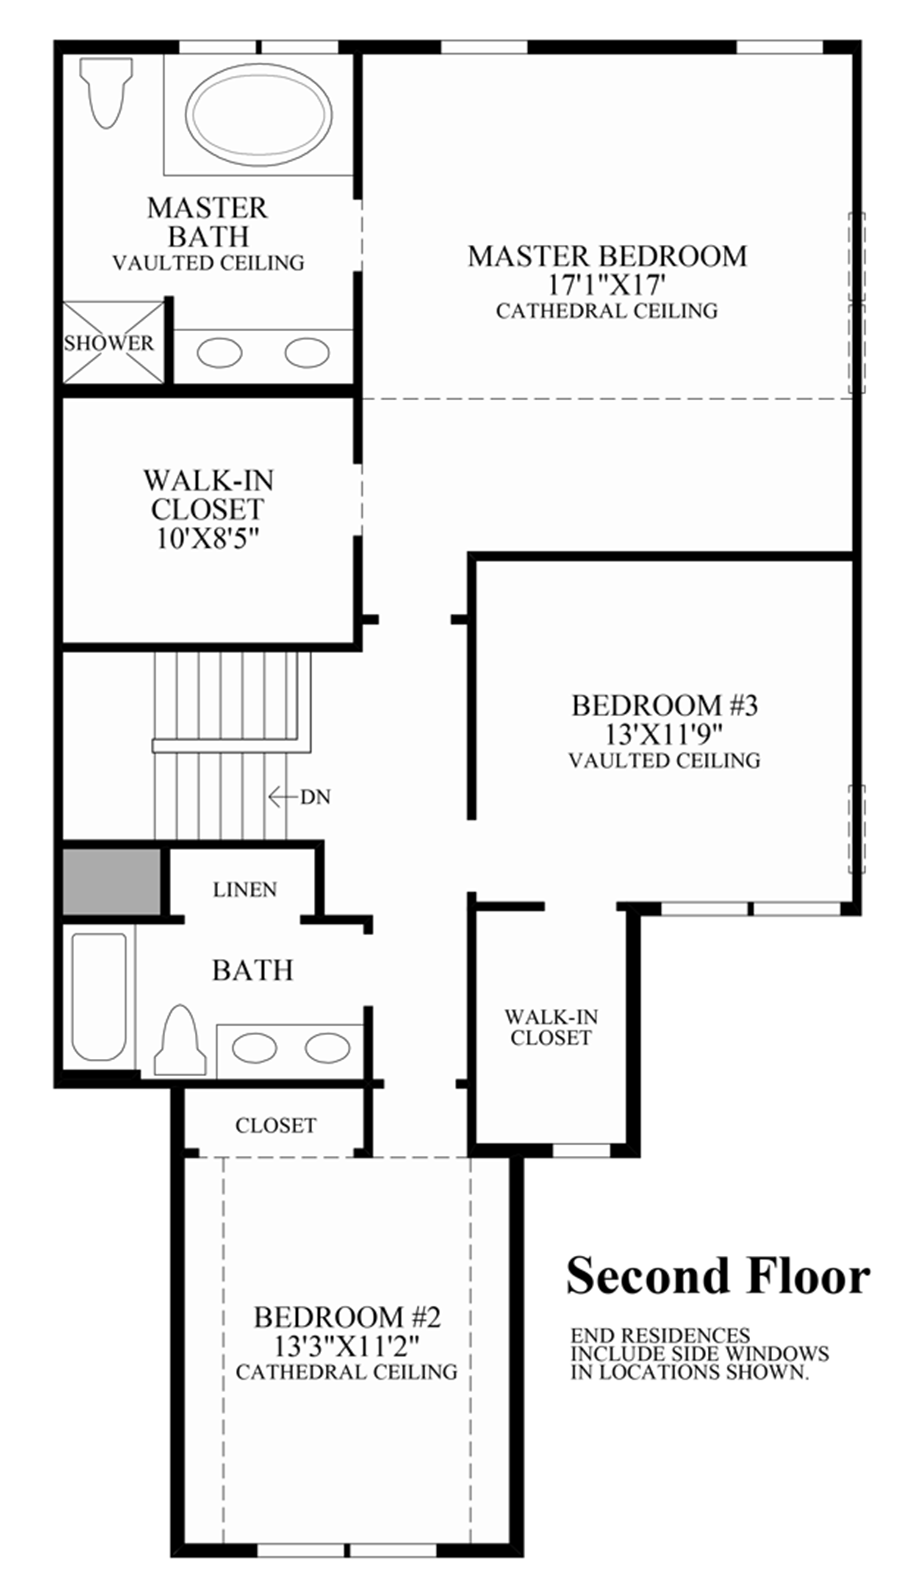 Enclave at pleasantville the pentwater home design 2nd floor loft ideas